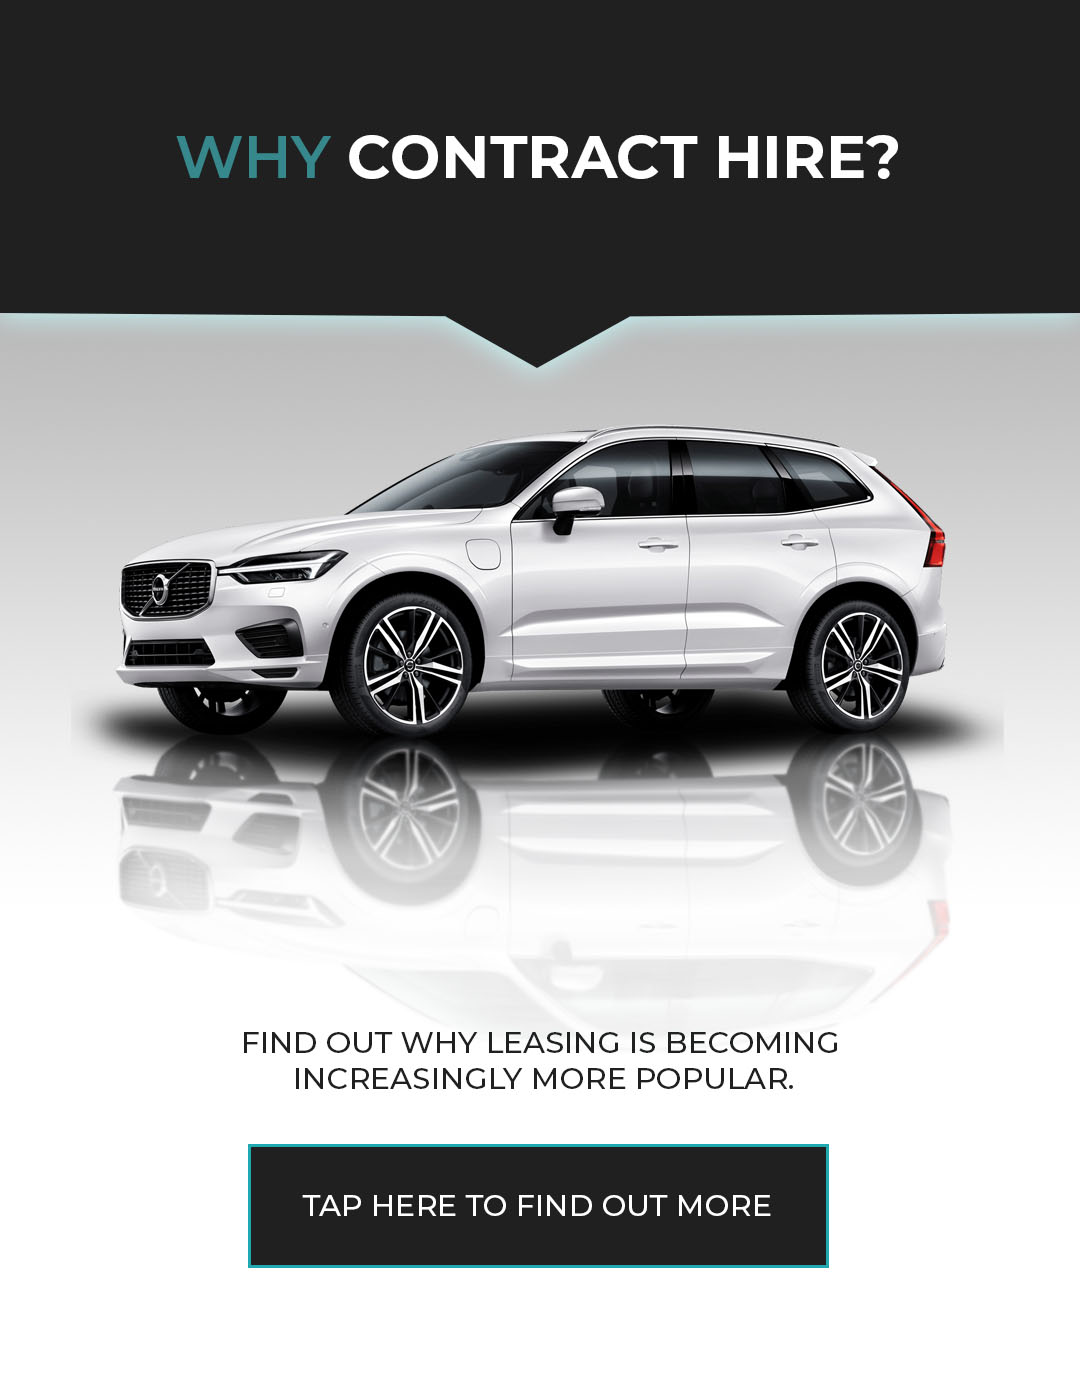 Why Contract Hire? Mobile